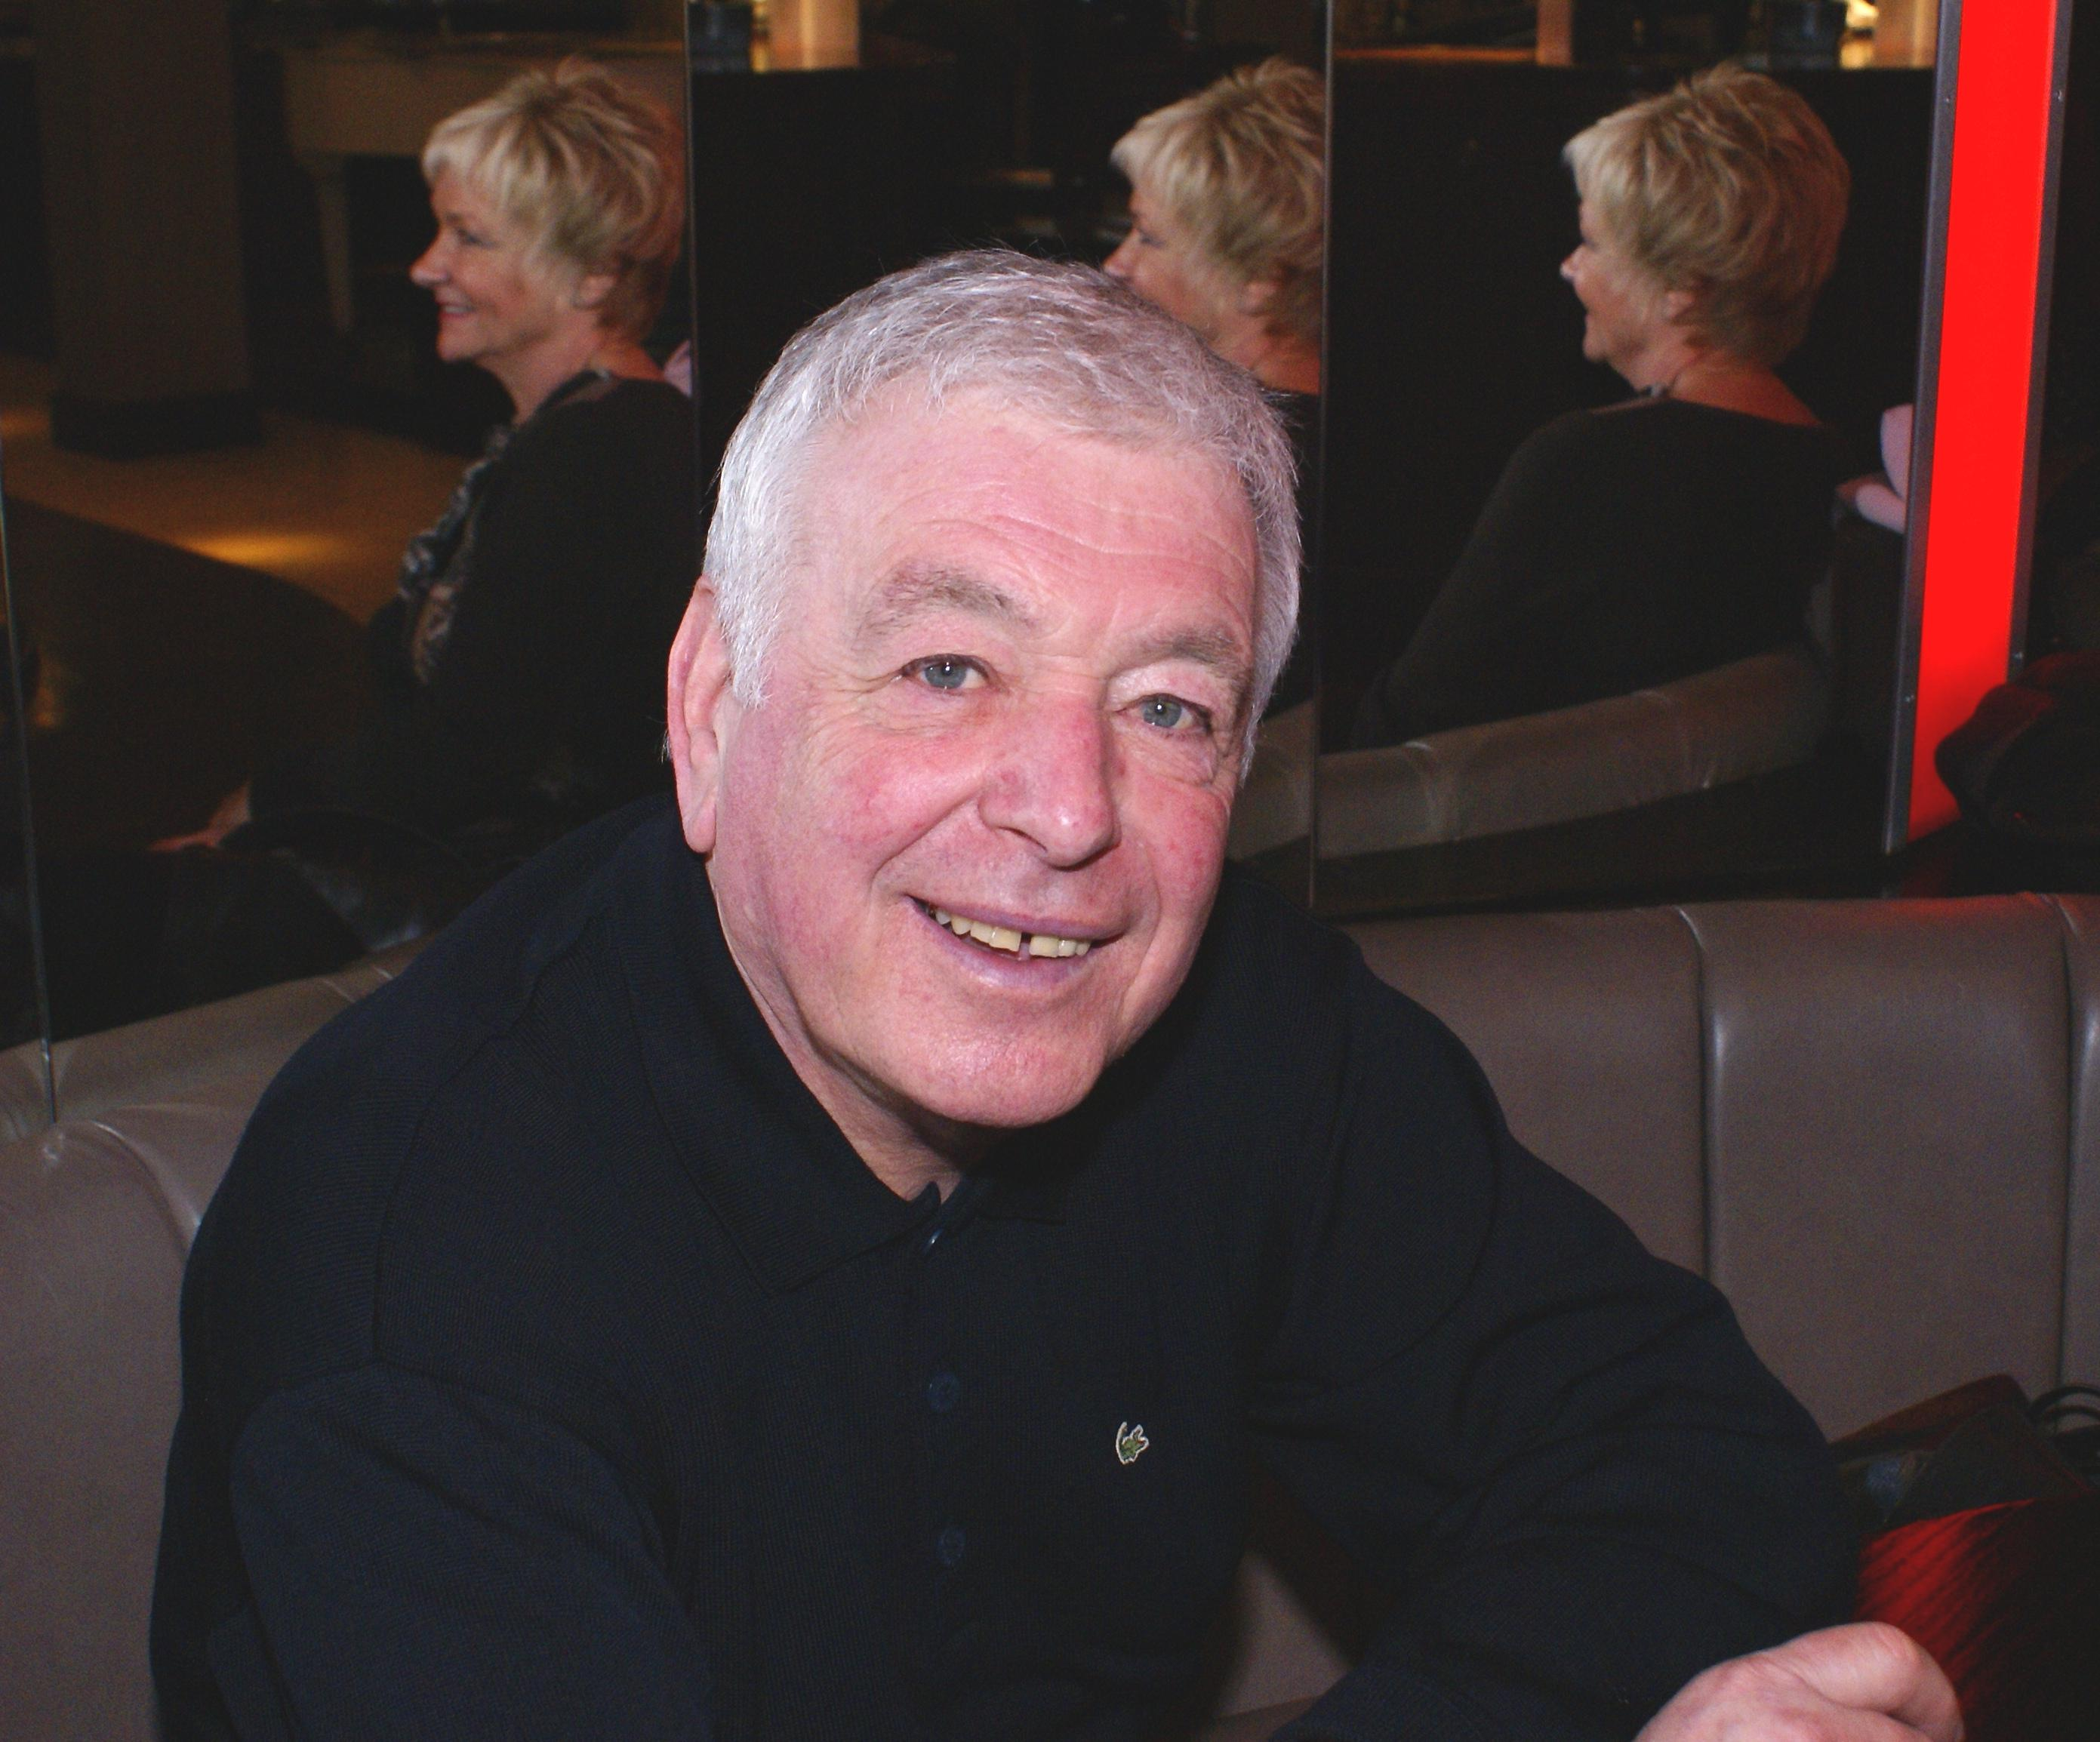 Ian Callaghan has plenty of stories to tell